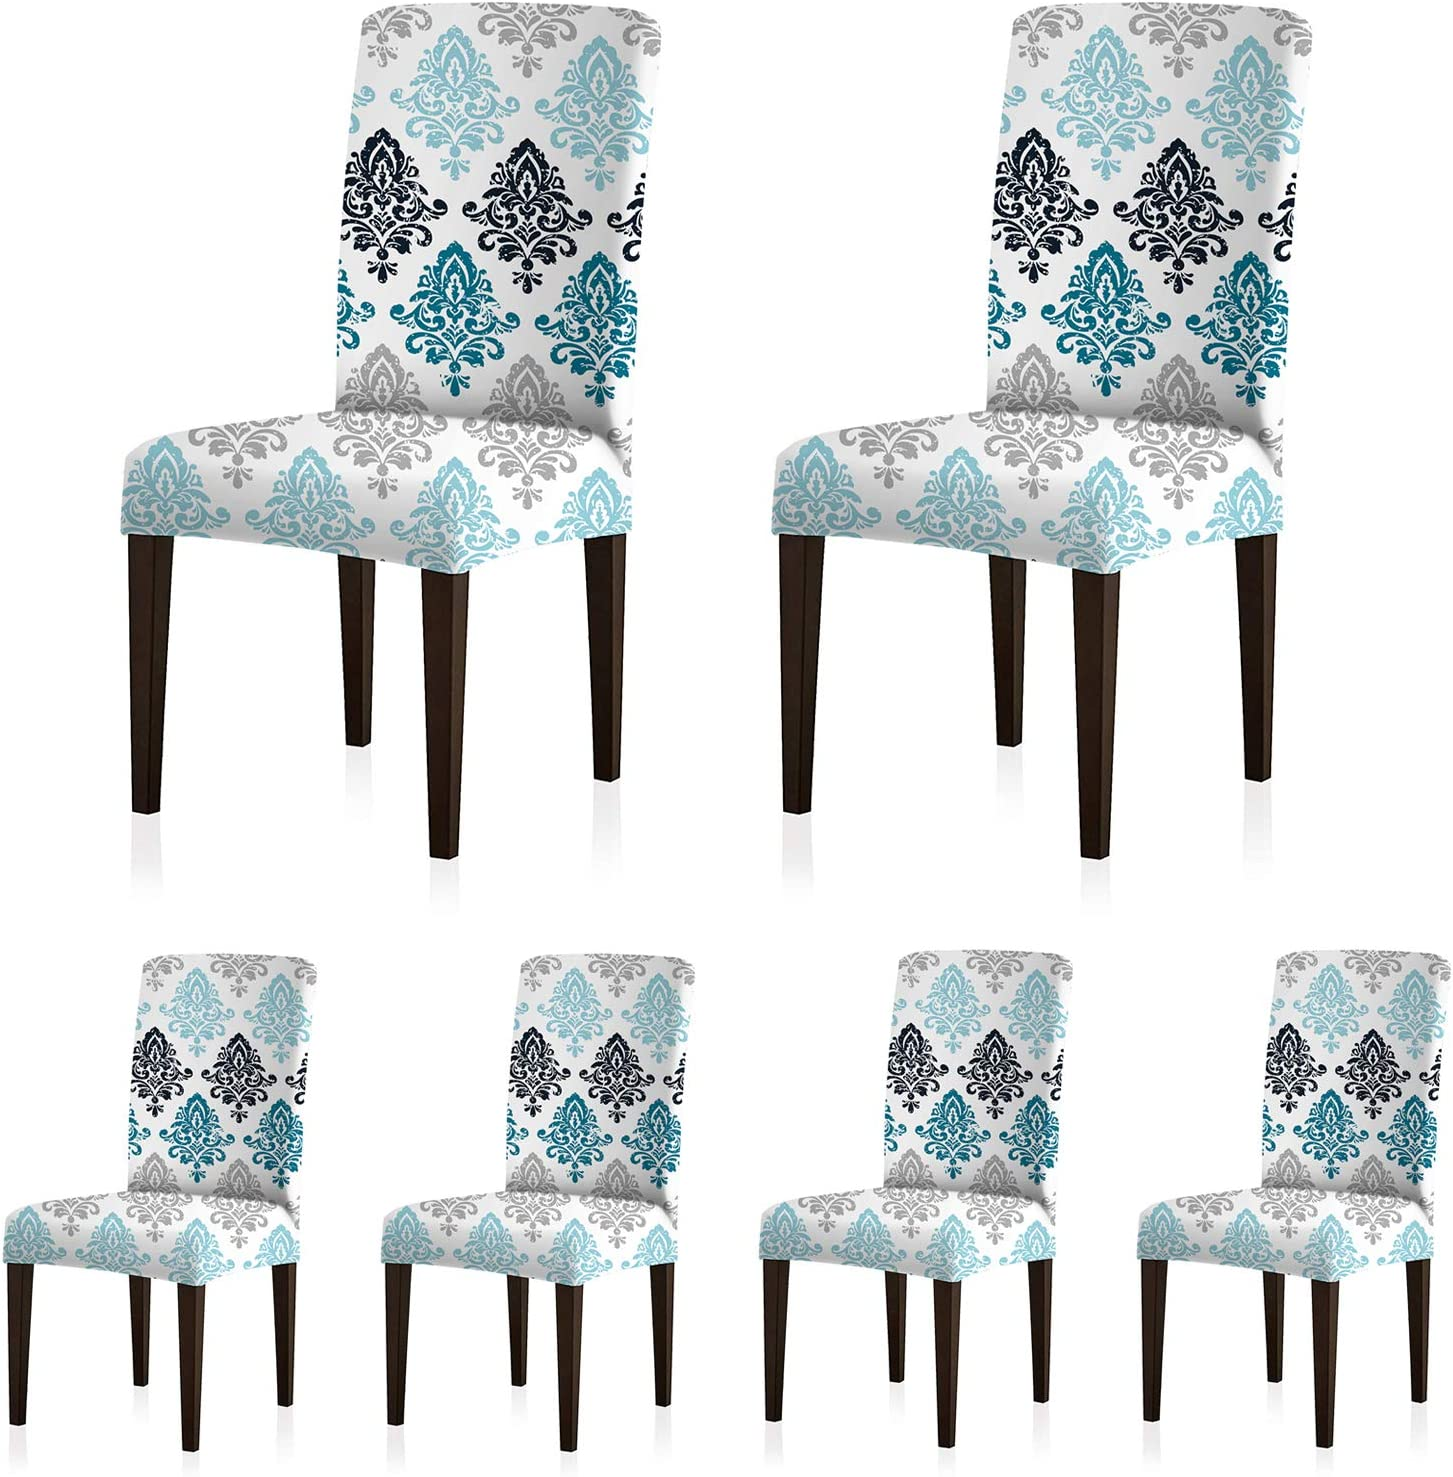 ColorBird European Style Special Campaign Spandex Removable Max 81% OFF Chair Univ Slipcovers